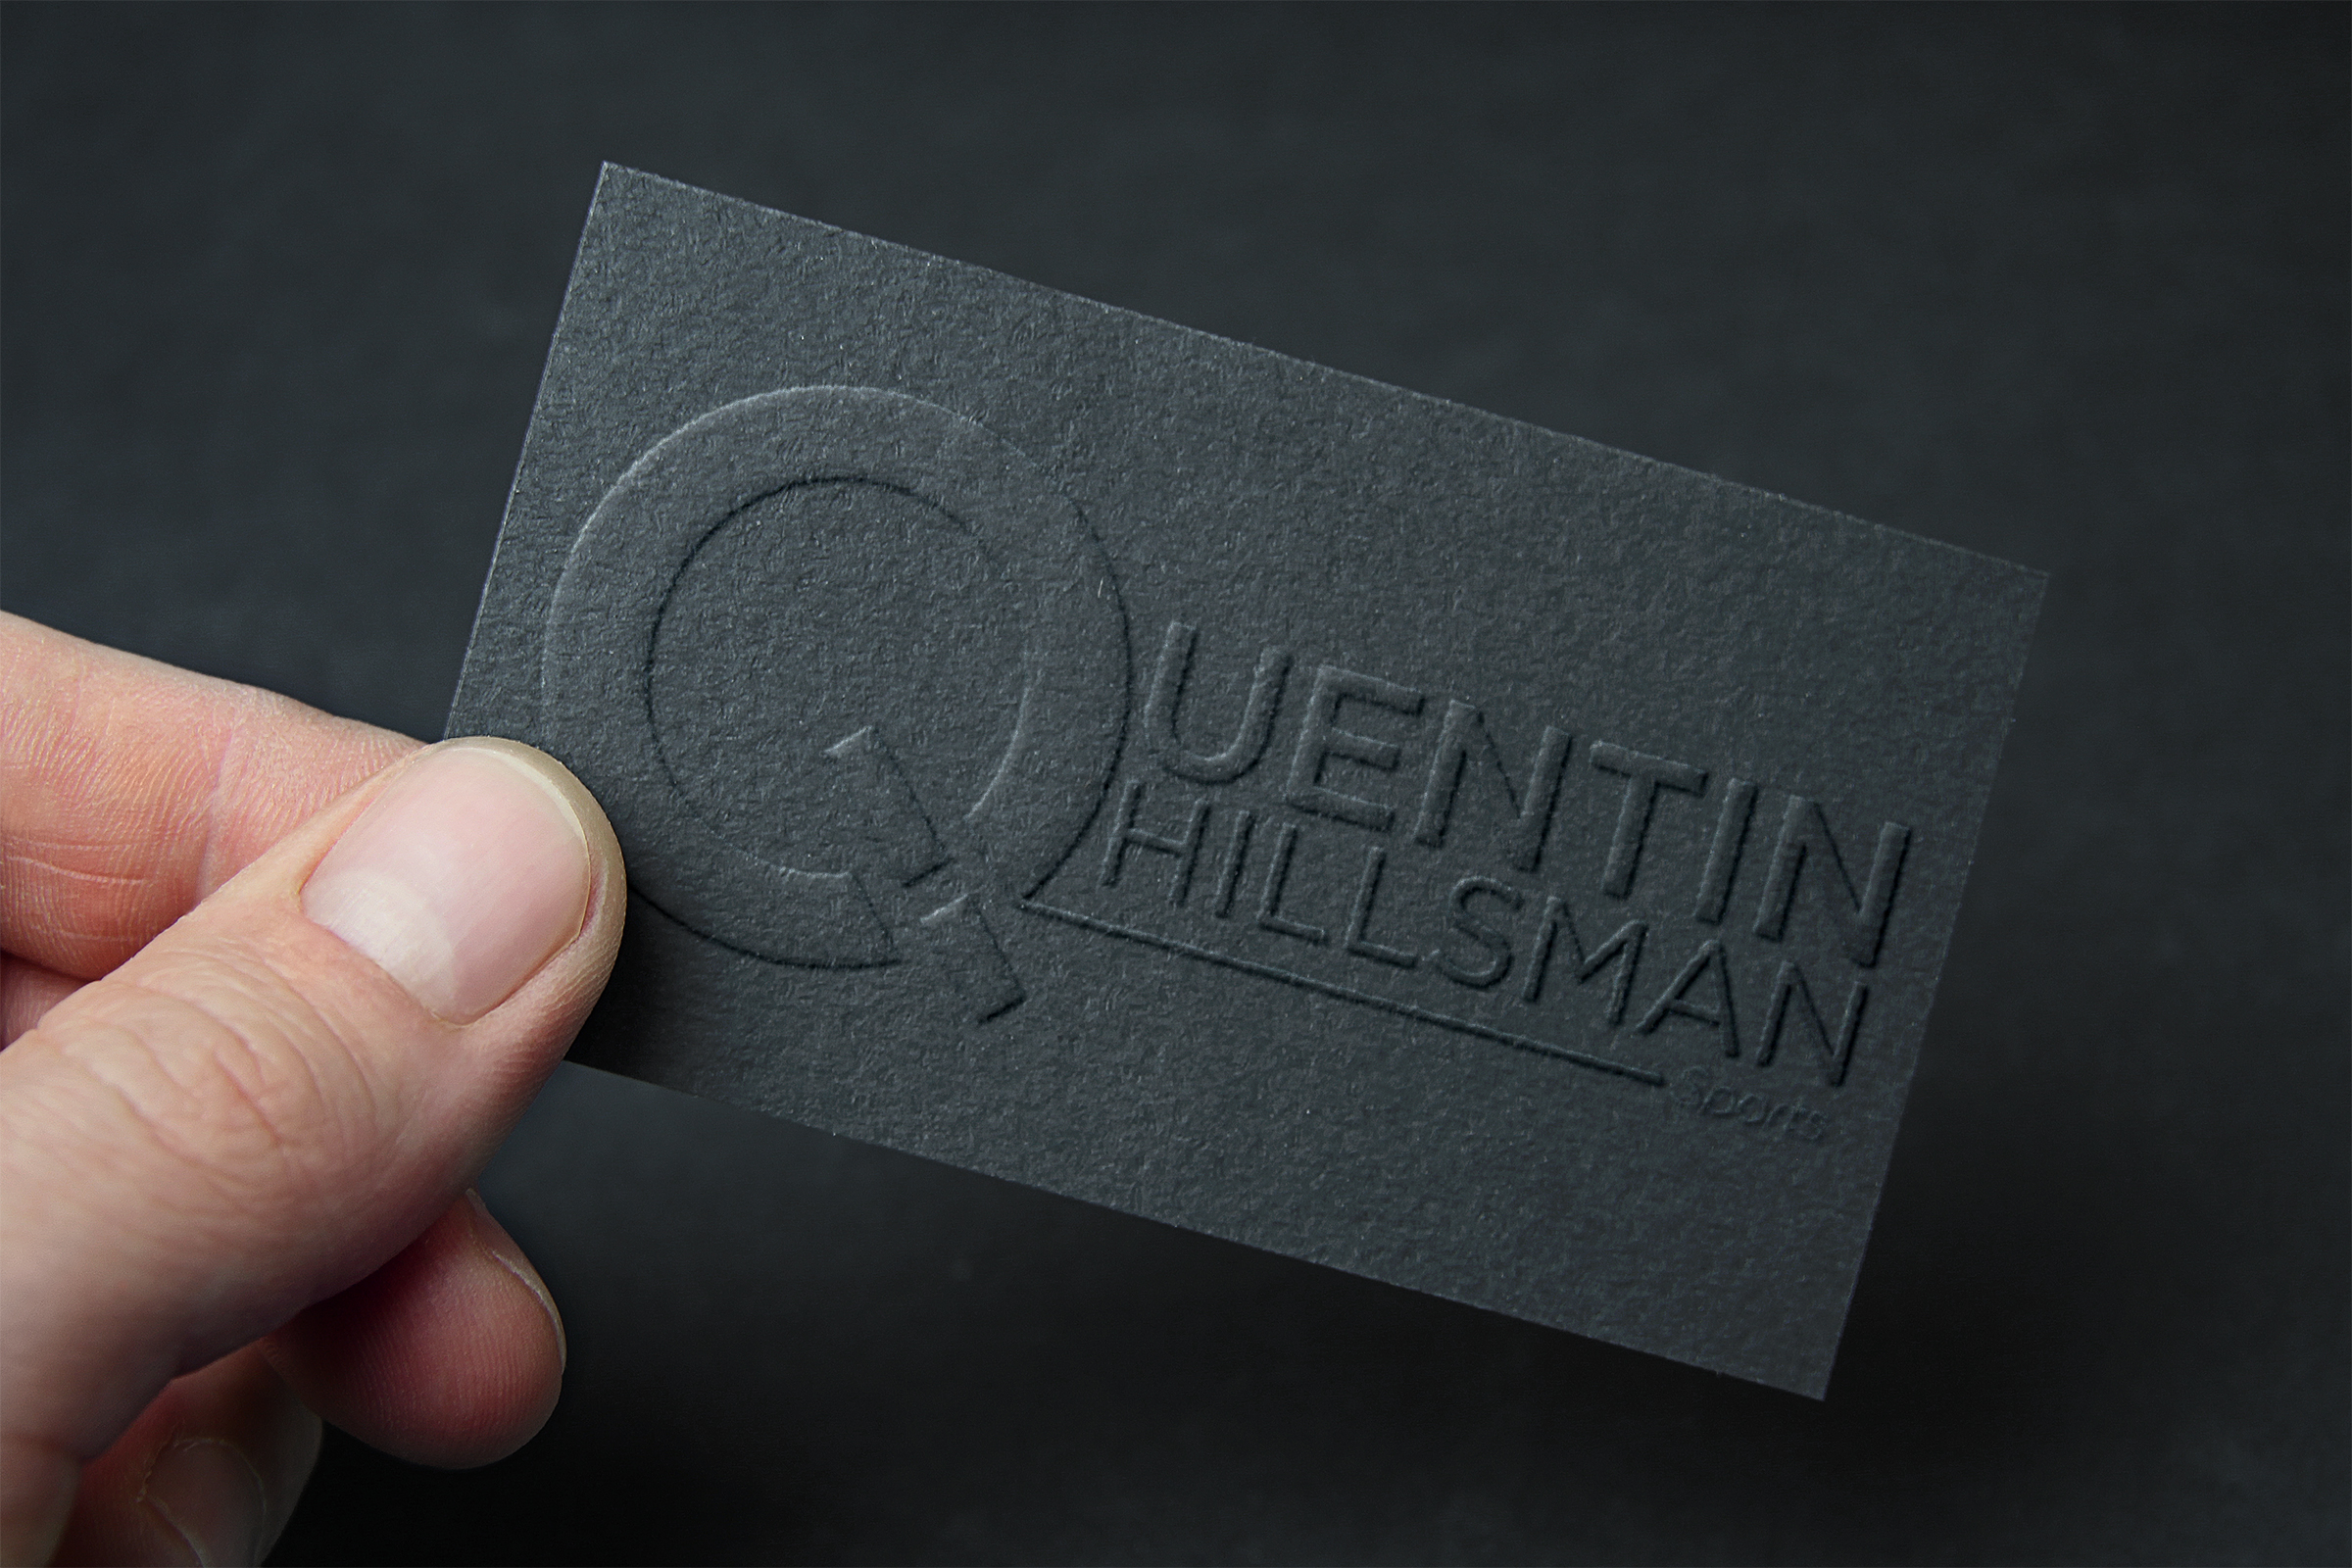 Quentin Hillsman Project